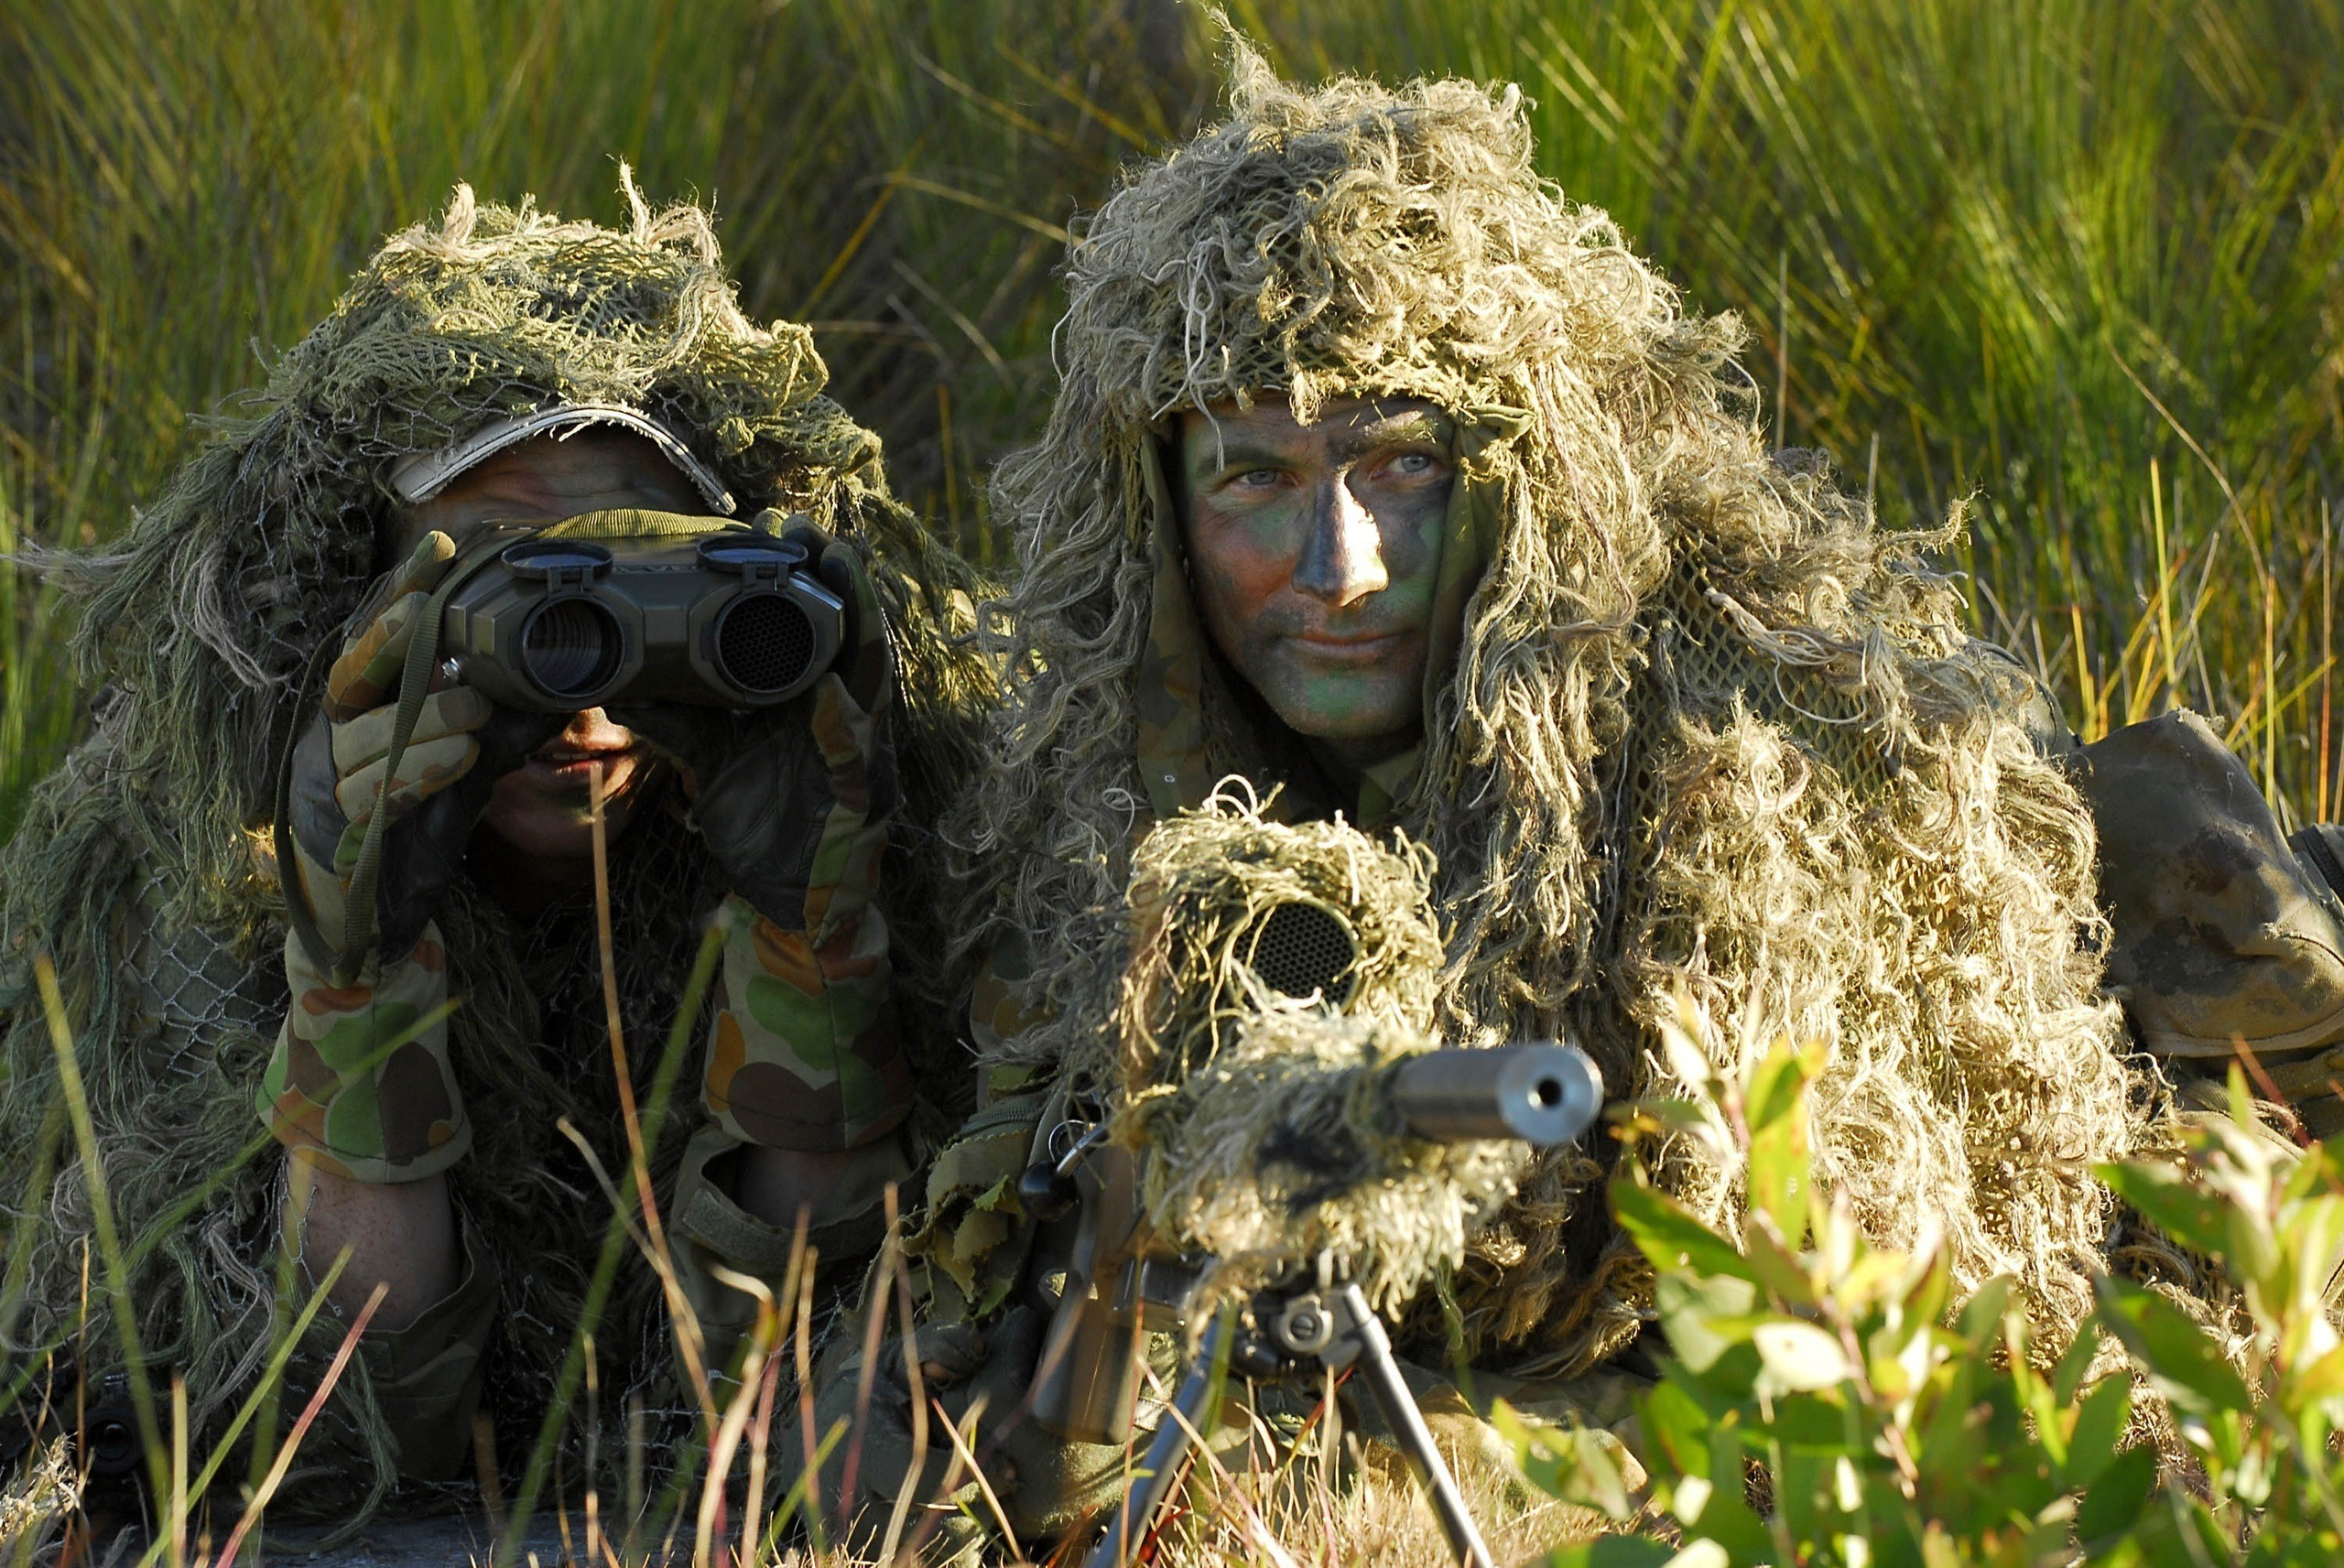 72 Ghillie Suit Wallpapers On Wallpaperplay: Ghillie Suit Wallpapers (71+ Background Pictures